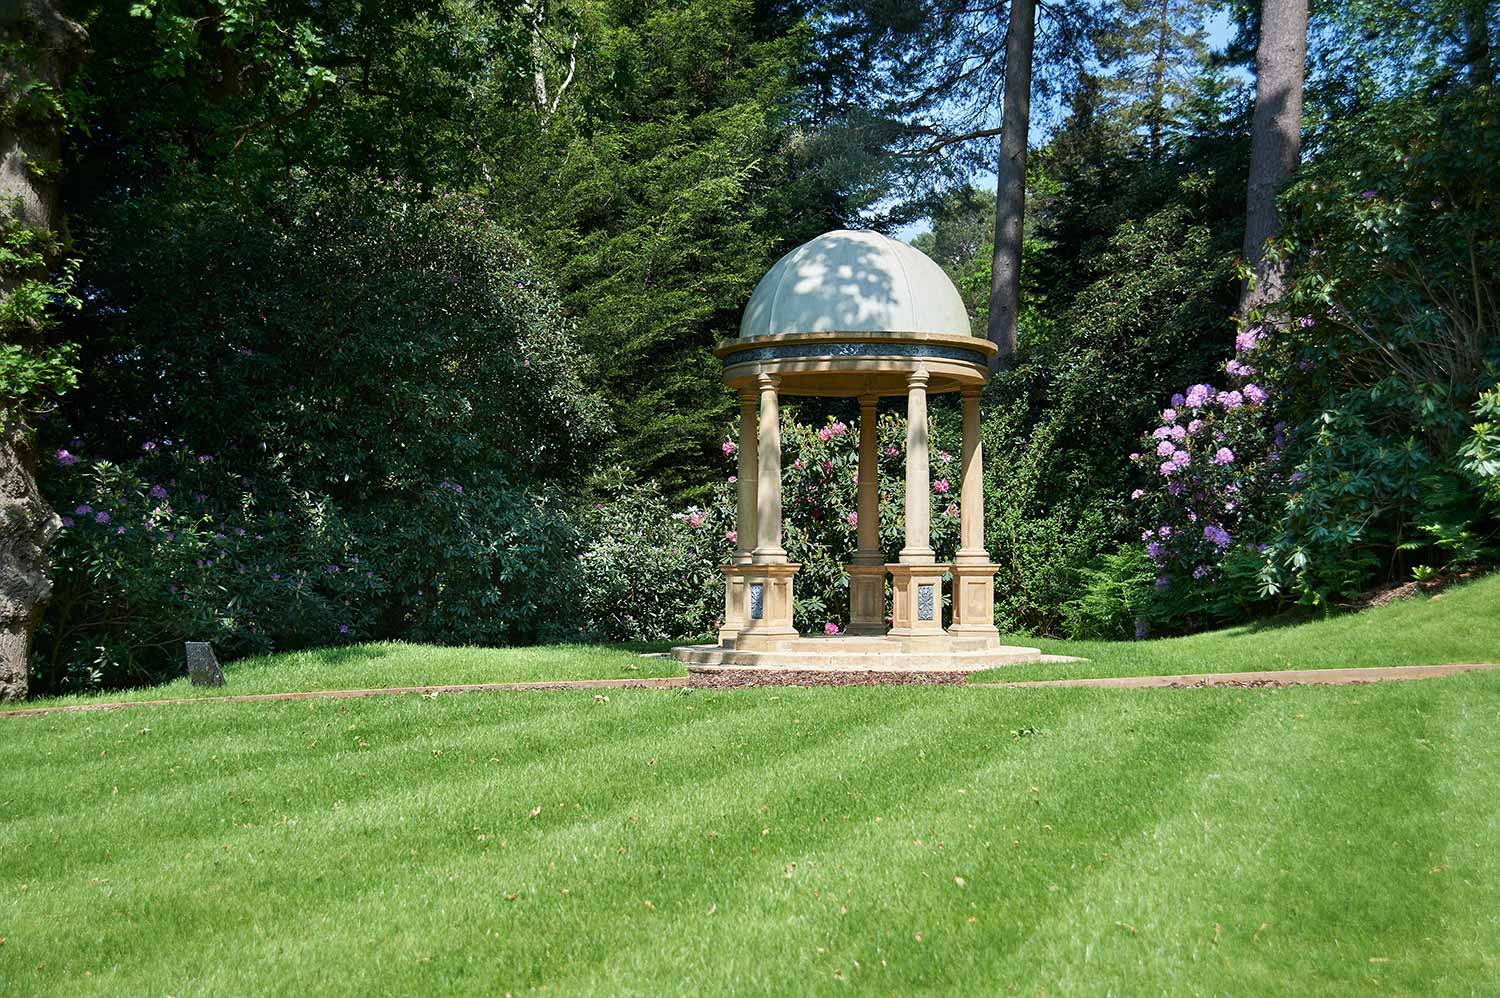 Cavendish Stone   Makers of life-sized stone garden ornaments   Products